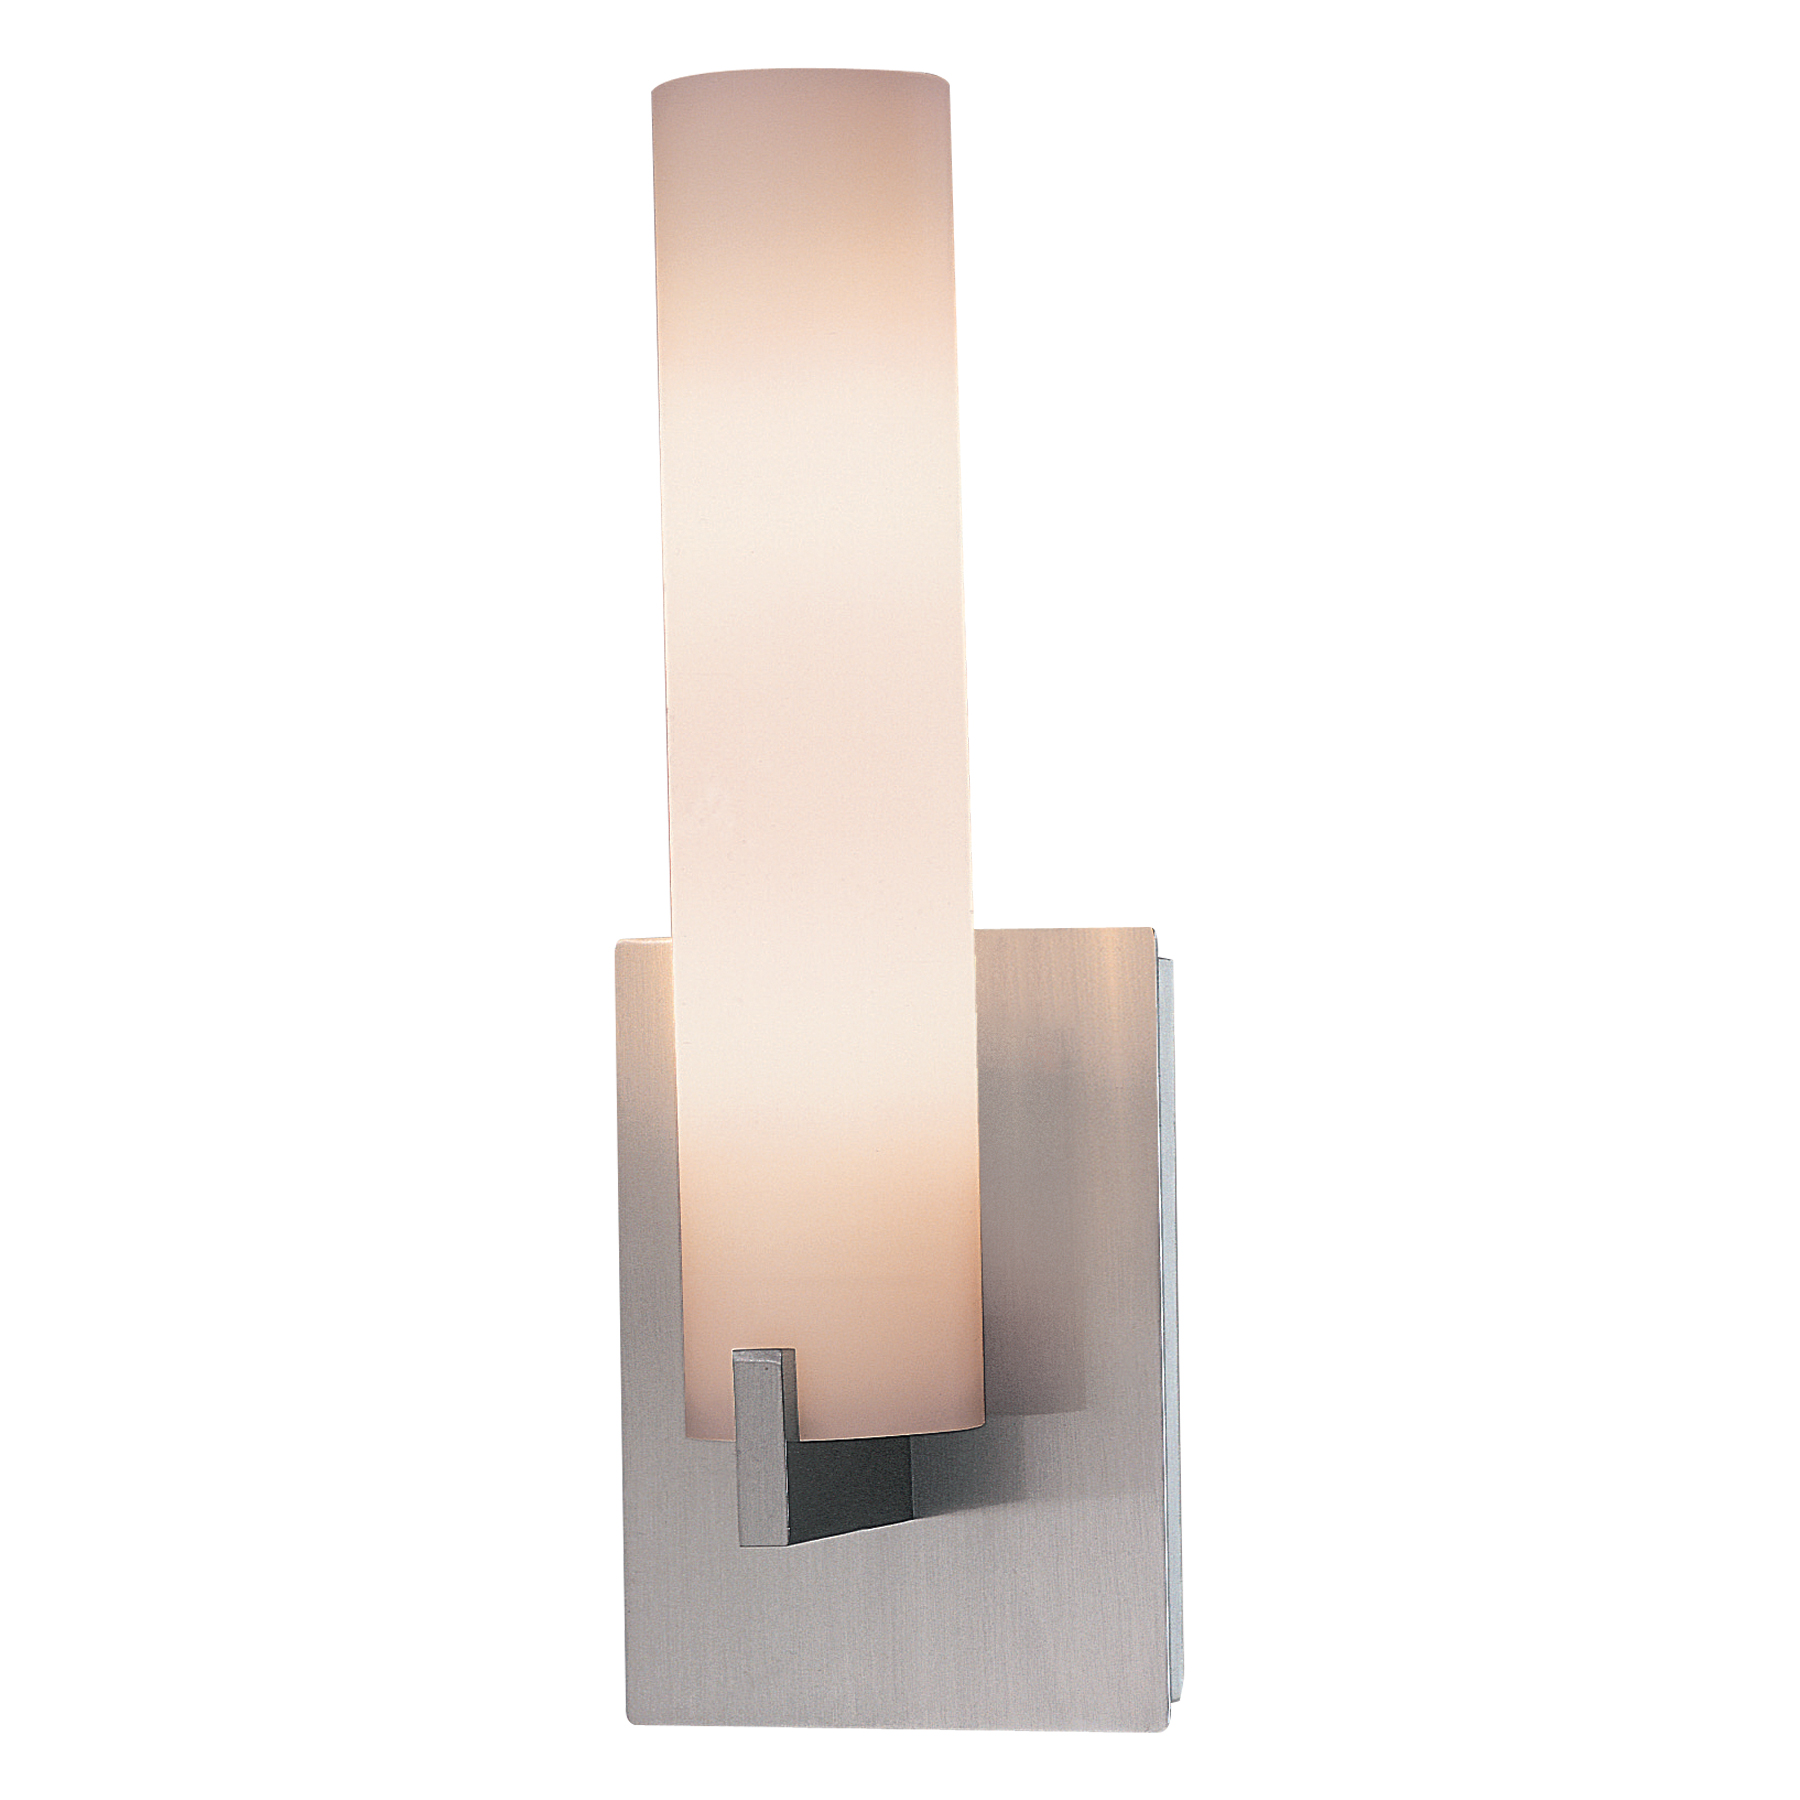 Bathroom Tube Sconces vanity wall sconcegeorge kovacs | p5040-084